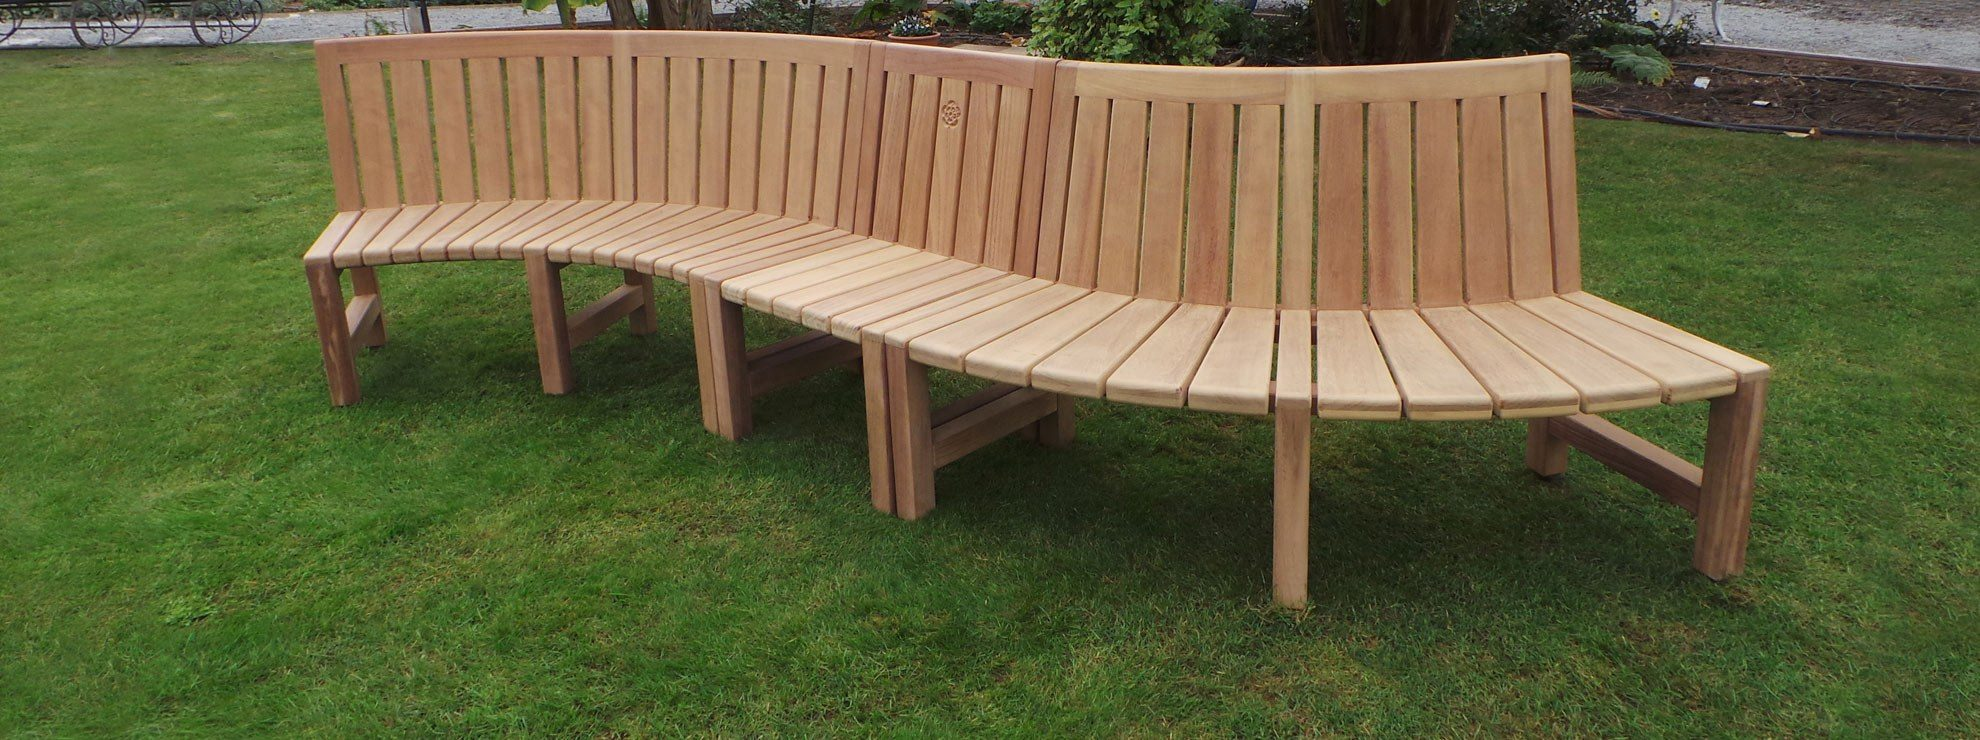 Curved Wooden Garden Benches Handcrafted In Yorkshire Woodcraft Uk